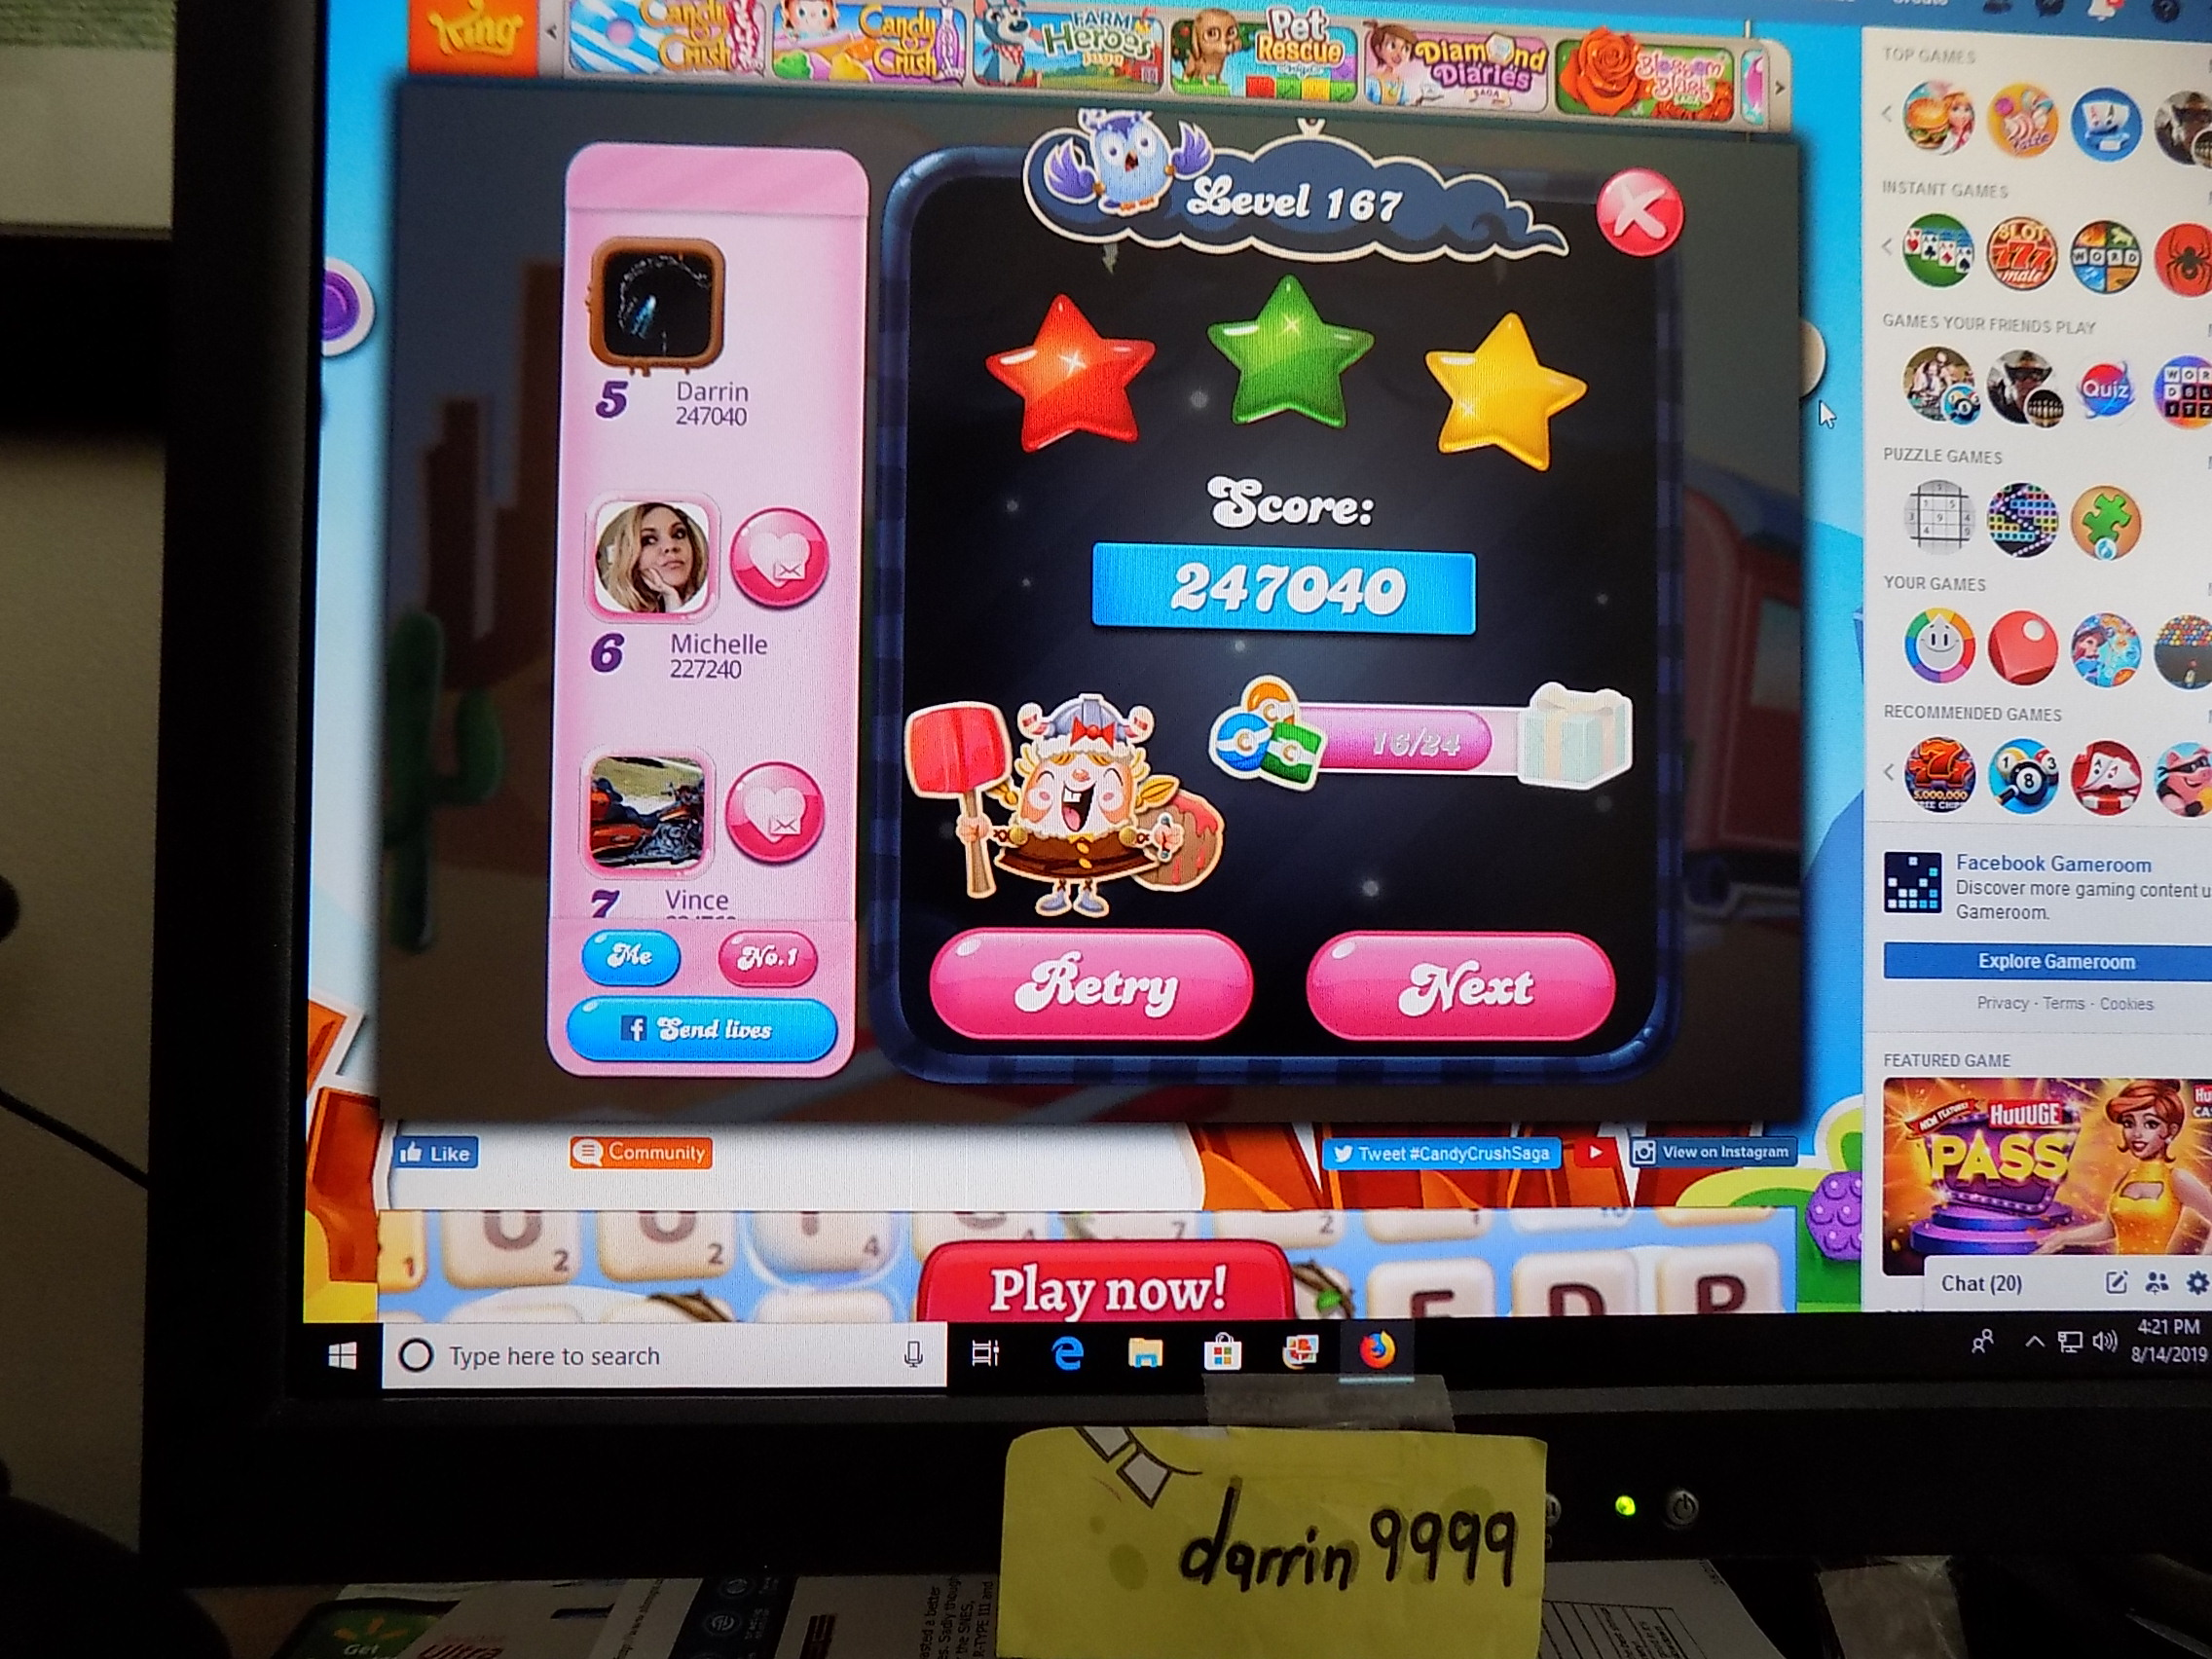 darrin9999: Candy Crush Saga: Level 167 (Web) 247,040 points on 2019-09-24 16:09:51